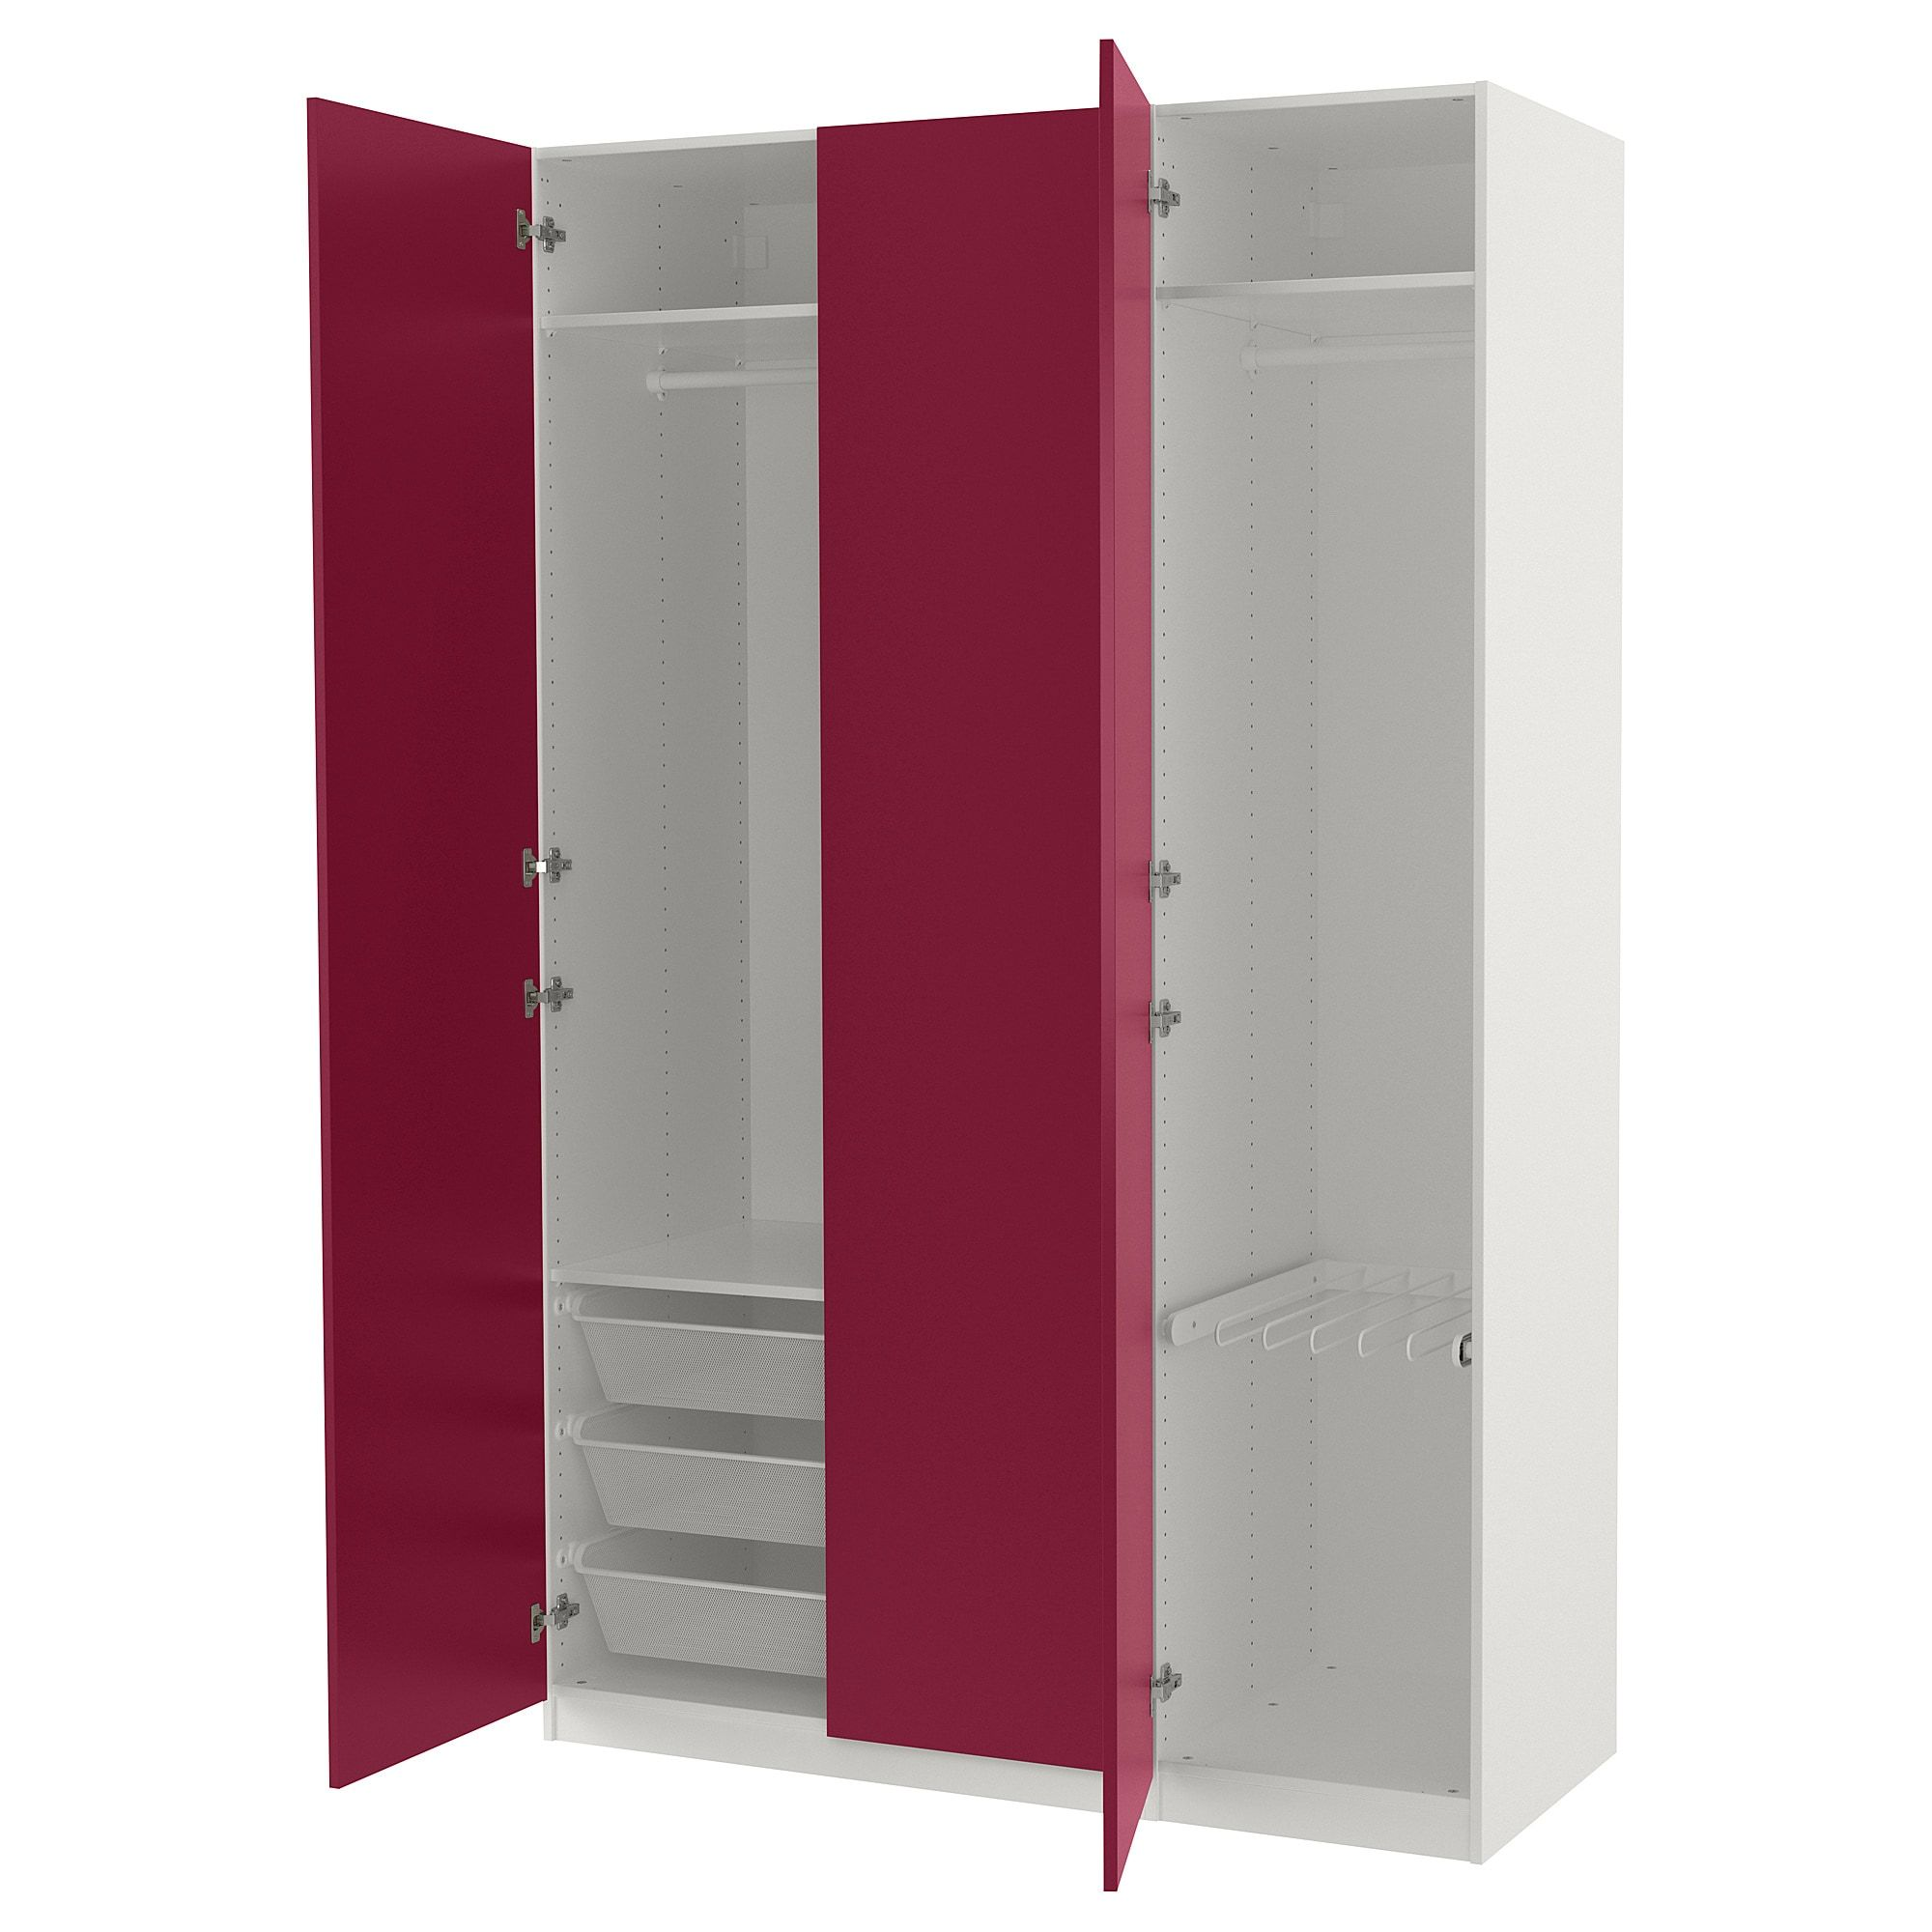 Ikea Us Furniture And Home Furnishings Ikea Pax Ikea Pax Wardrobe Pax Wardrobe